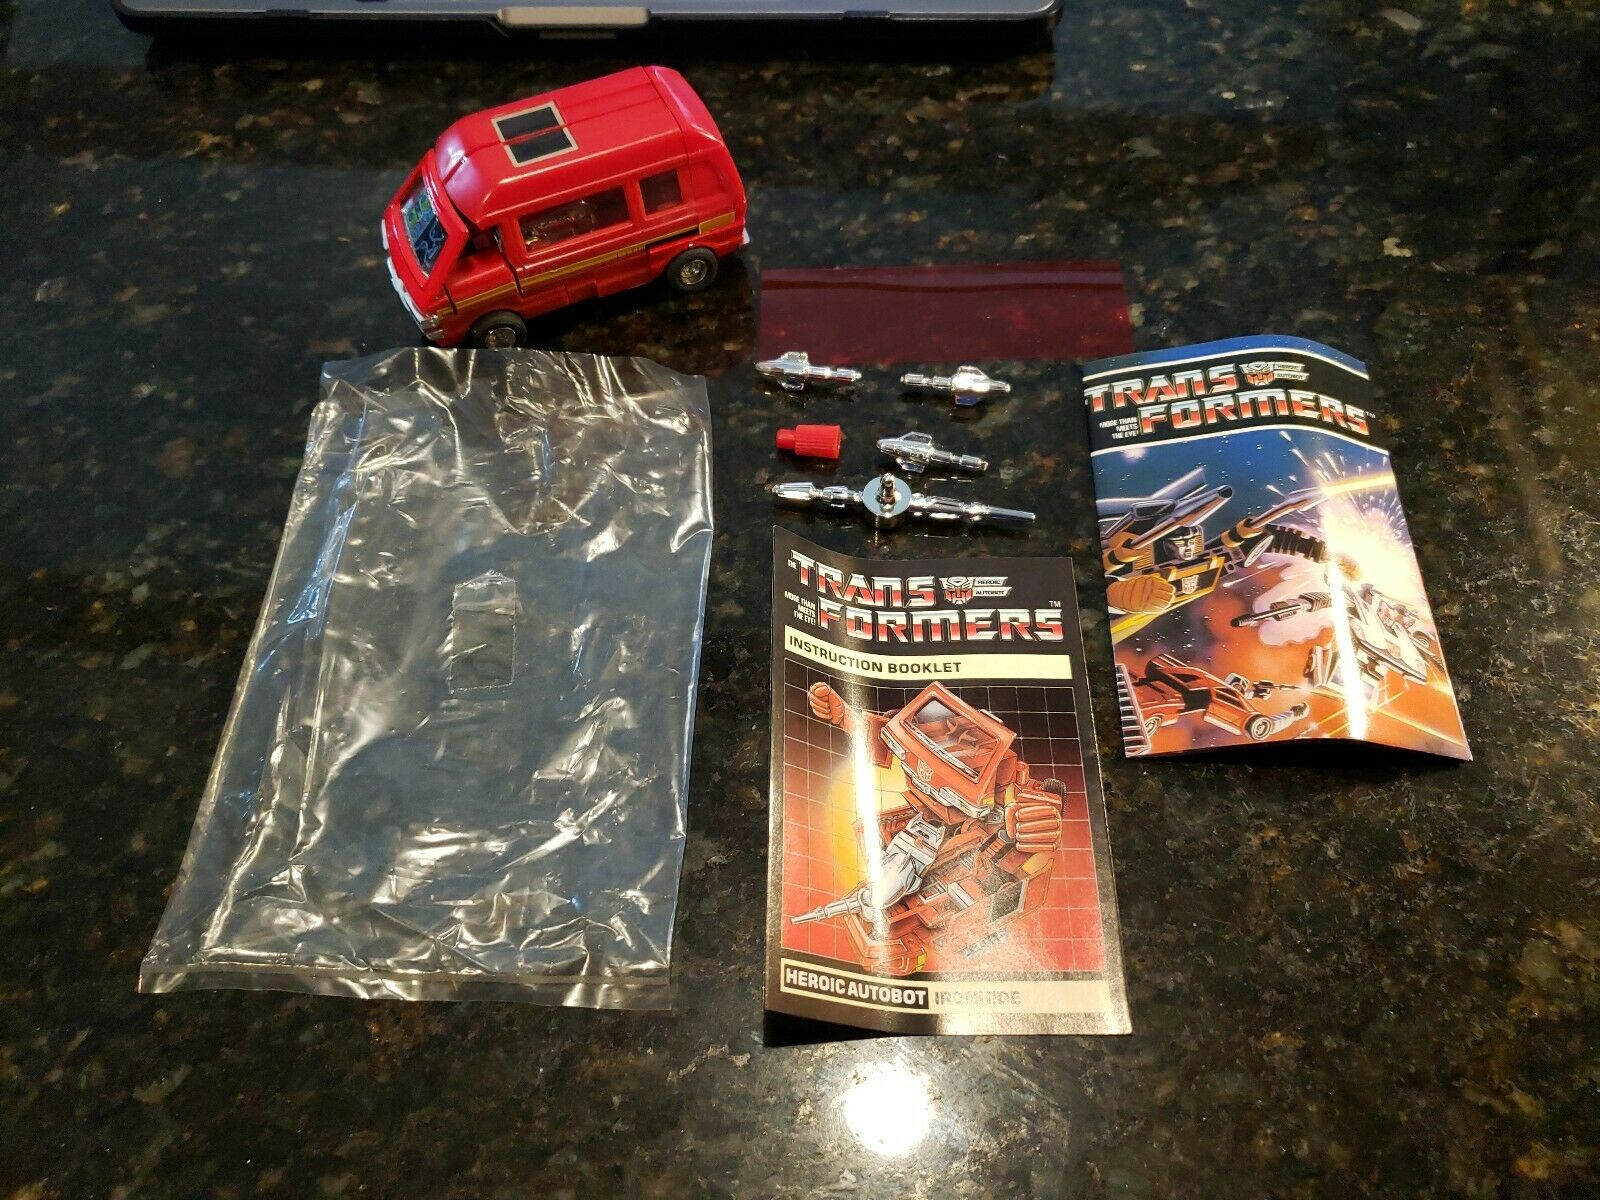 1984  Transformers IRONHIDE completare With Instructions TAKARA Co. NICE  ordina adesso